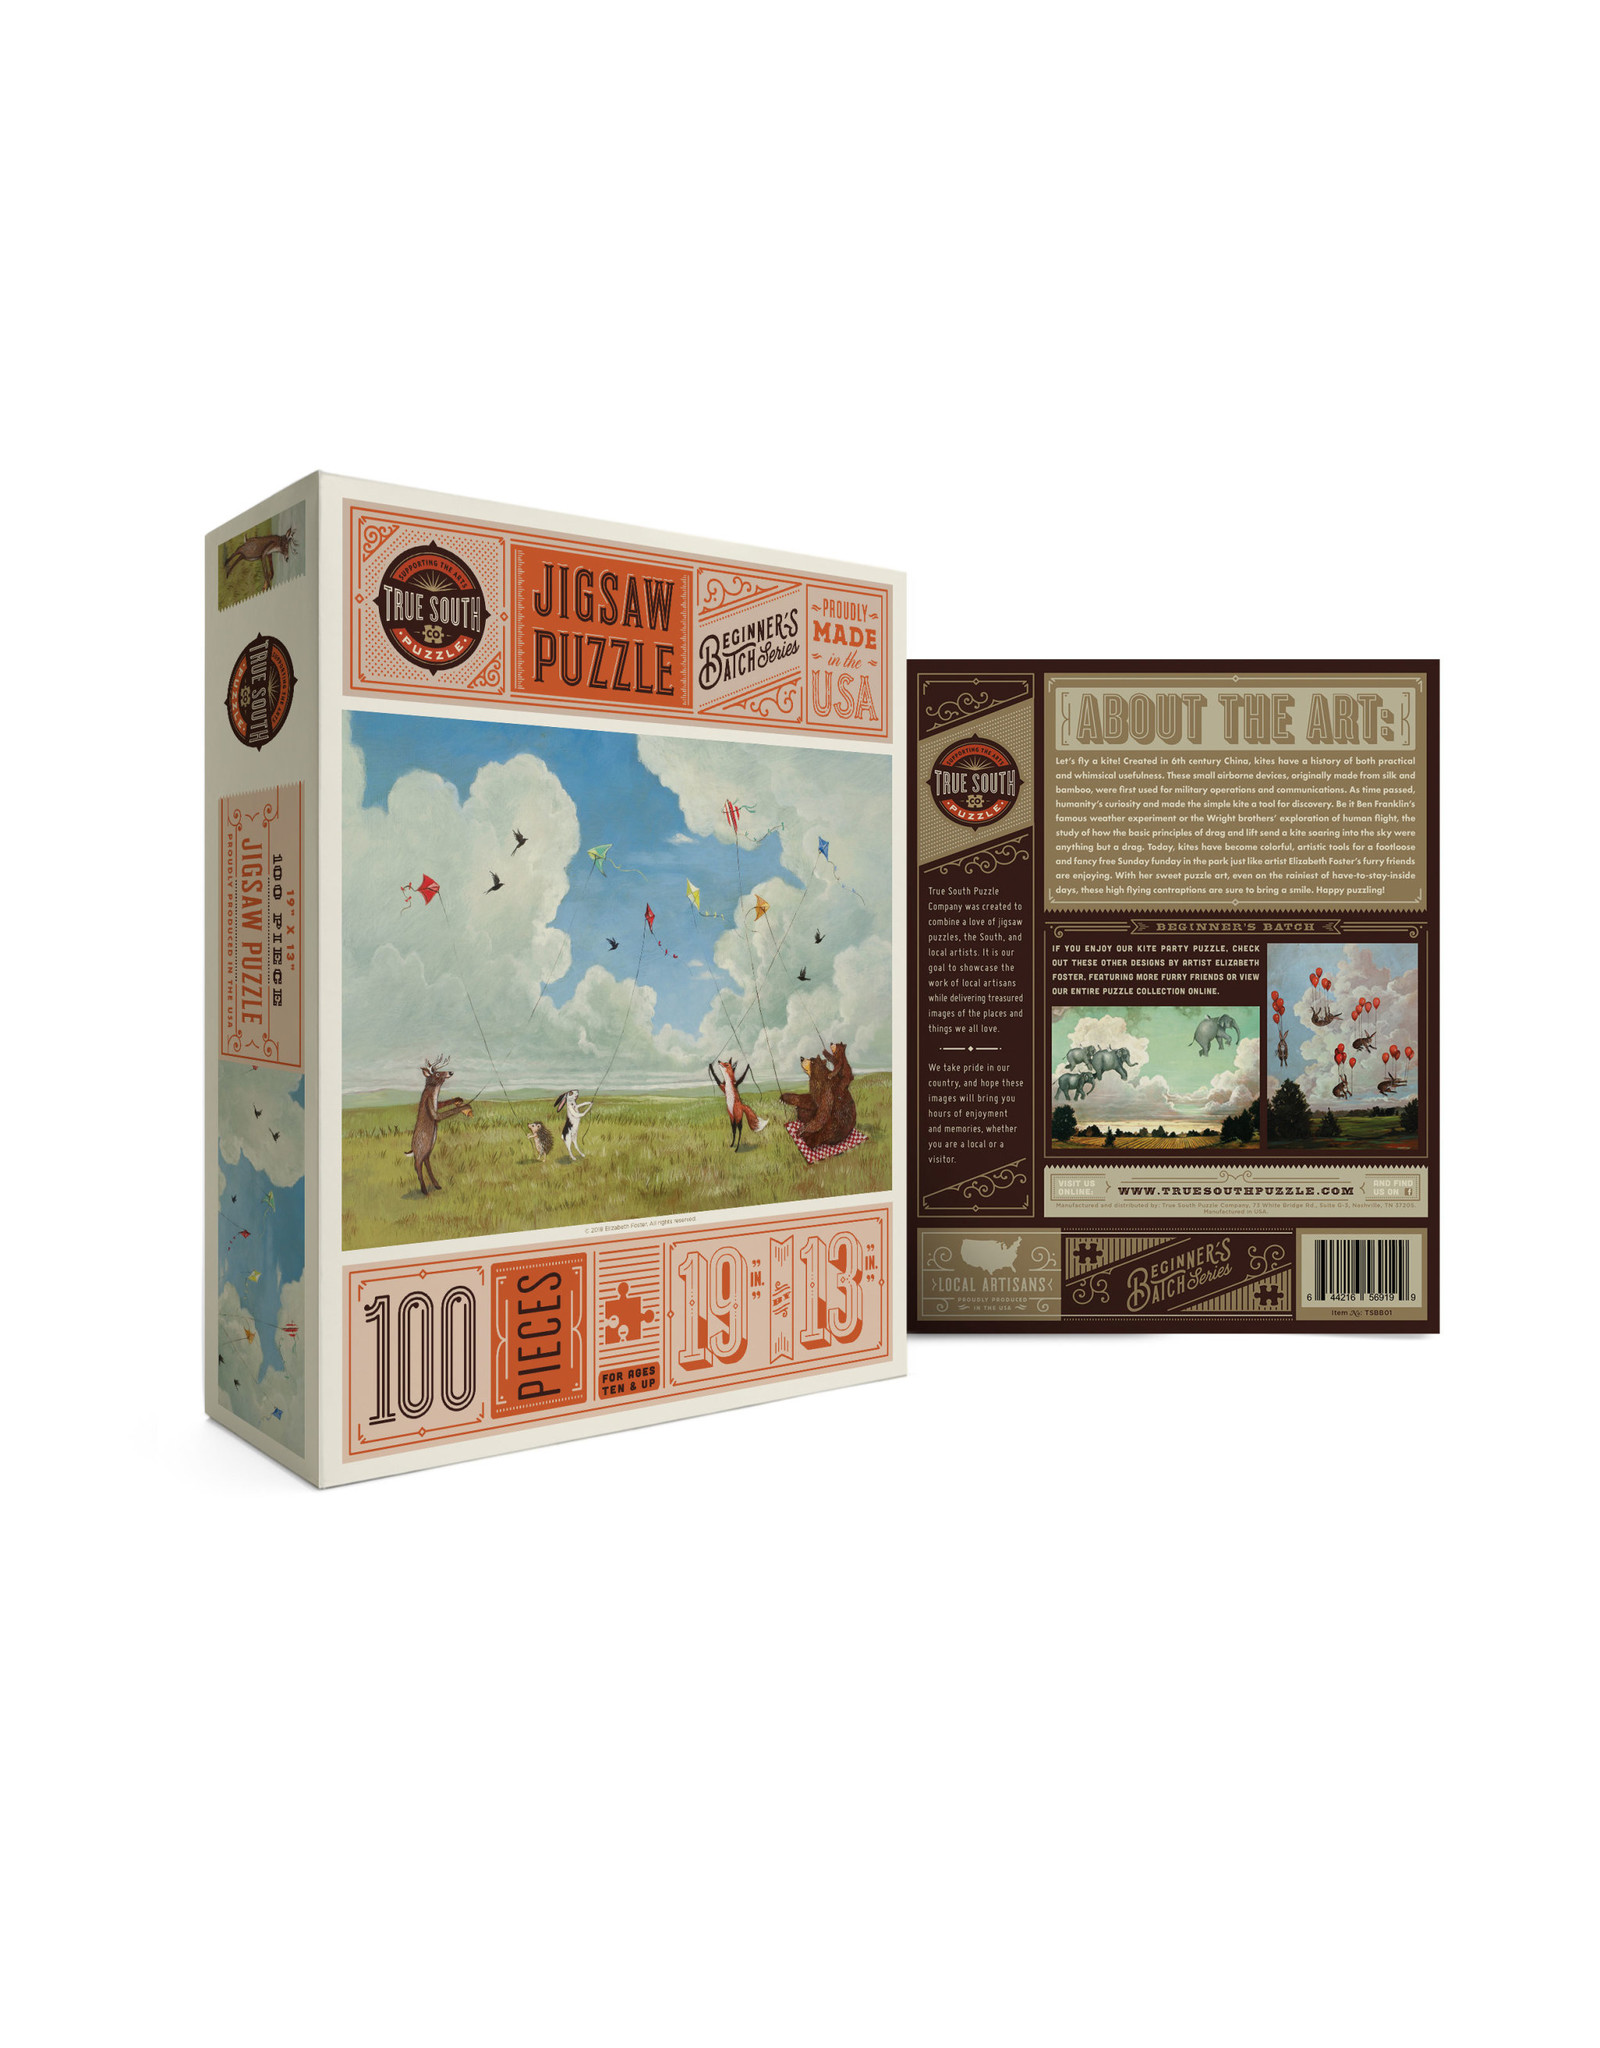 True South Kite Party Puzzle